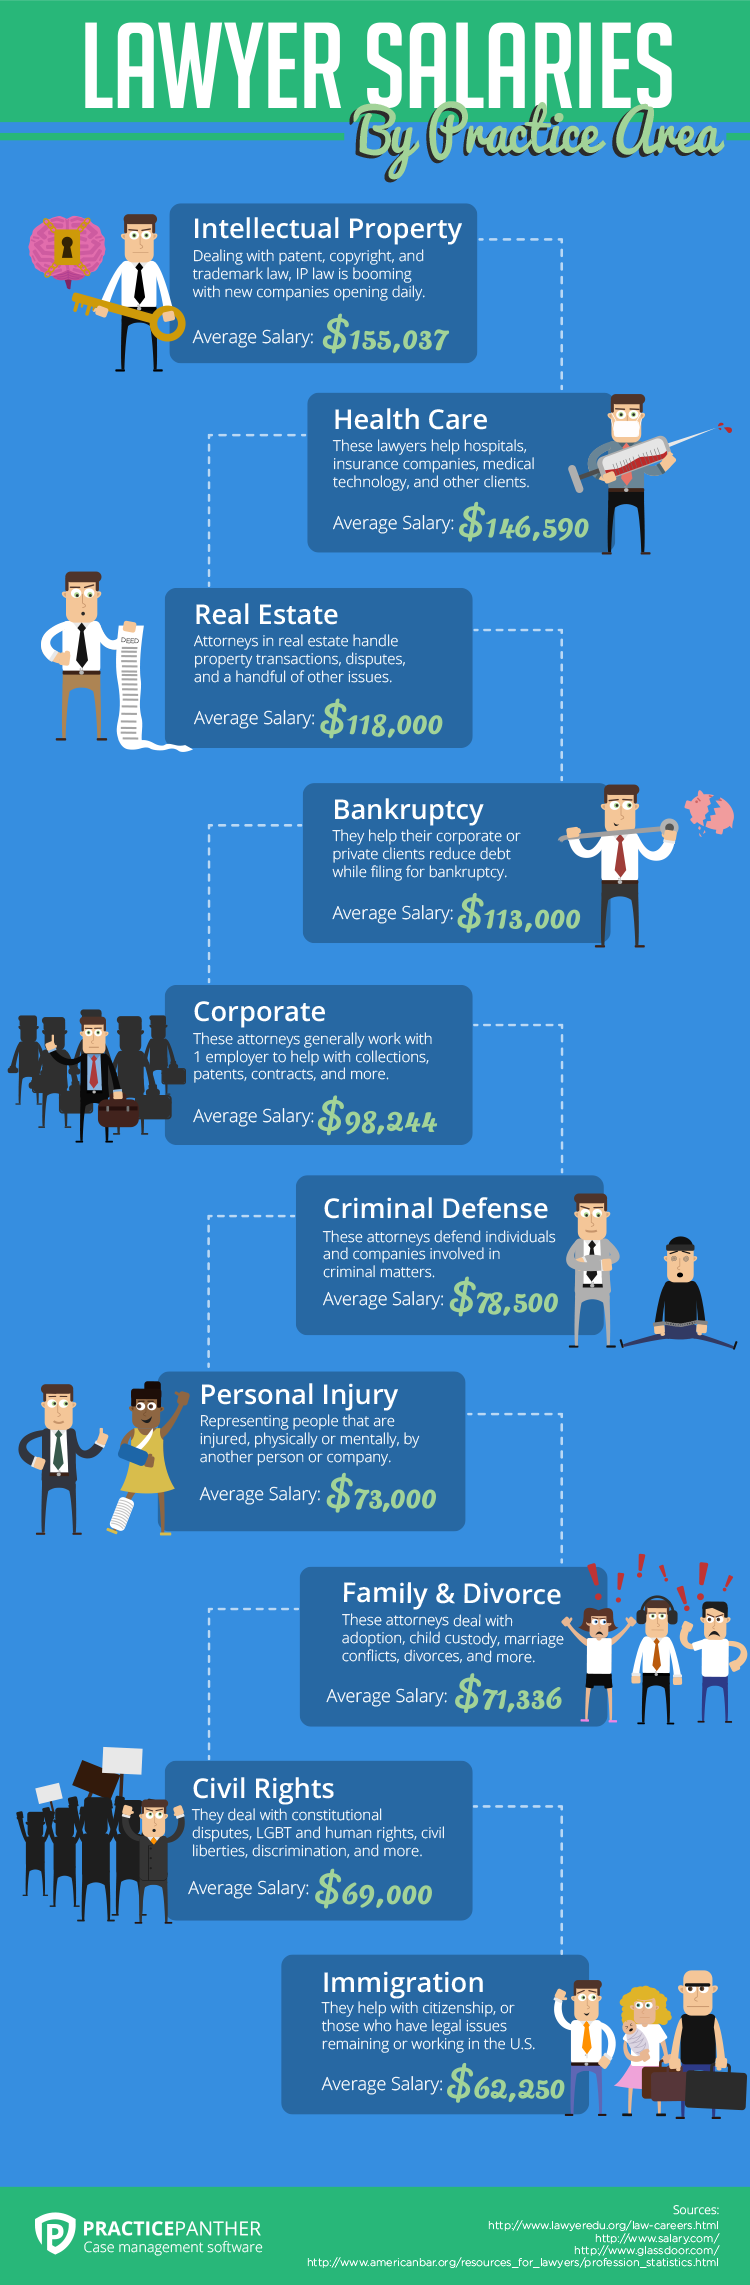 lawyer-salaries-infographic-by-practicepanther